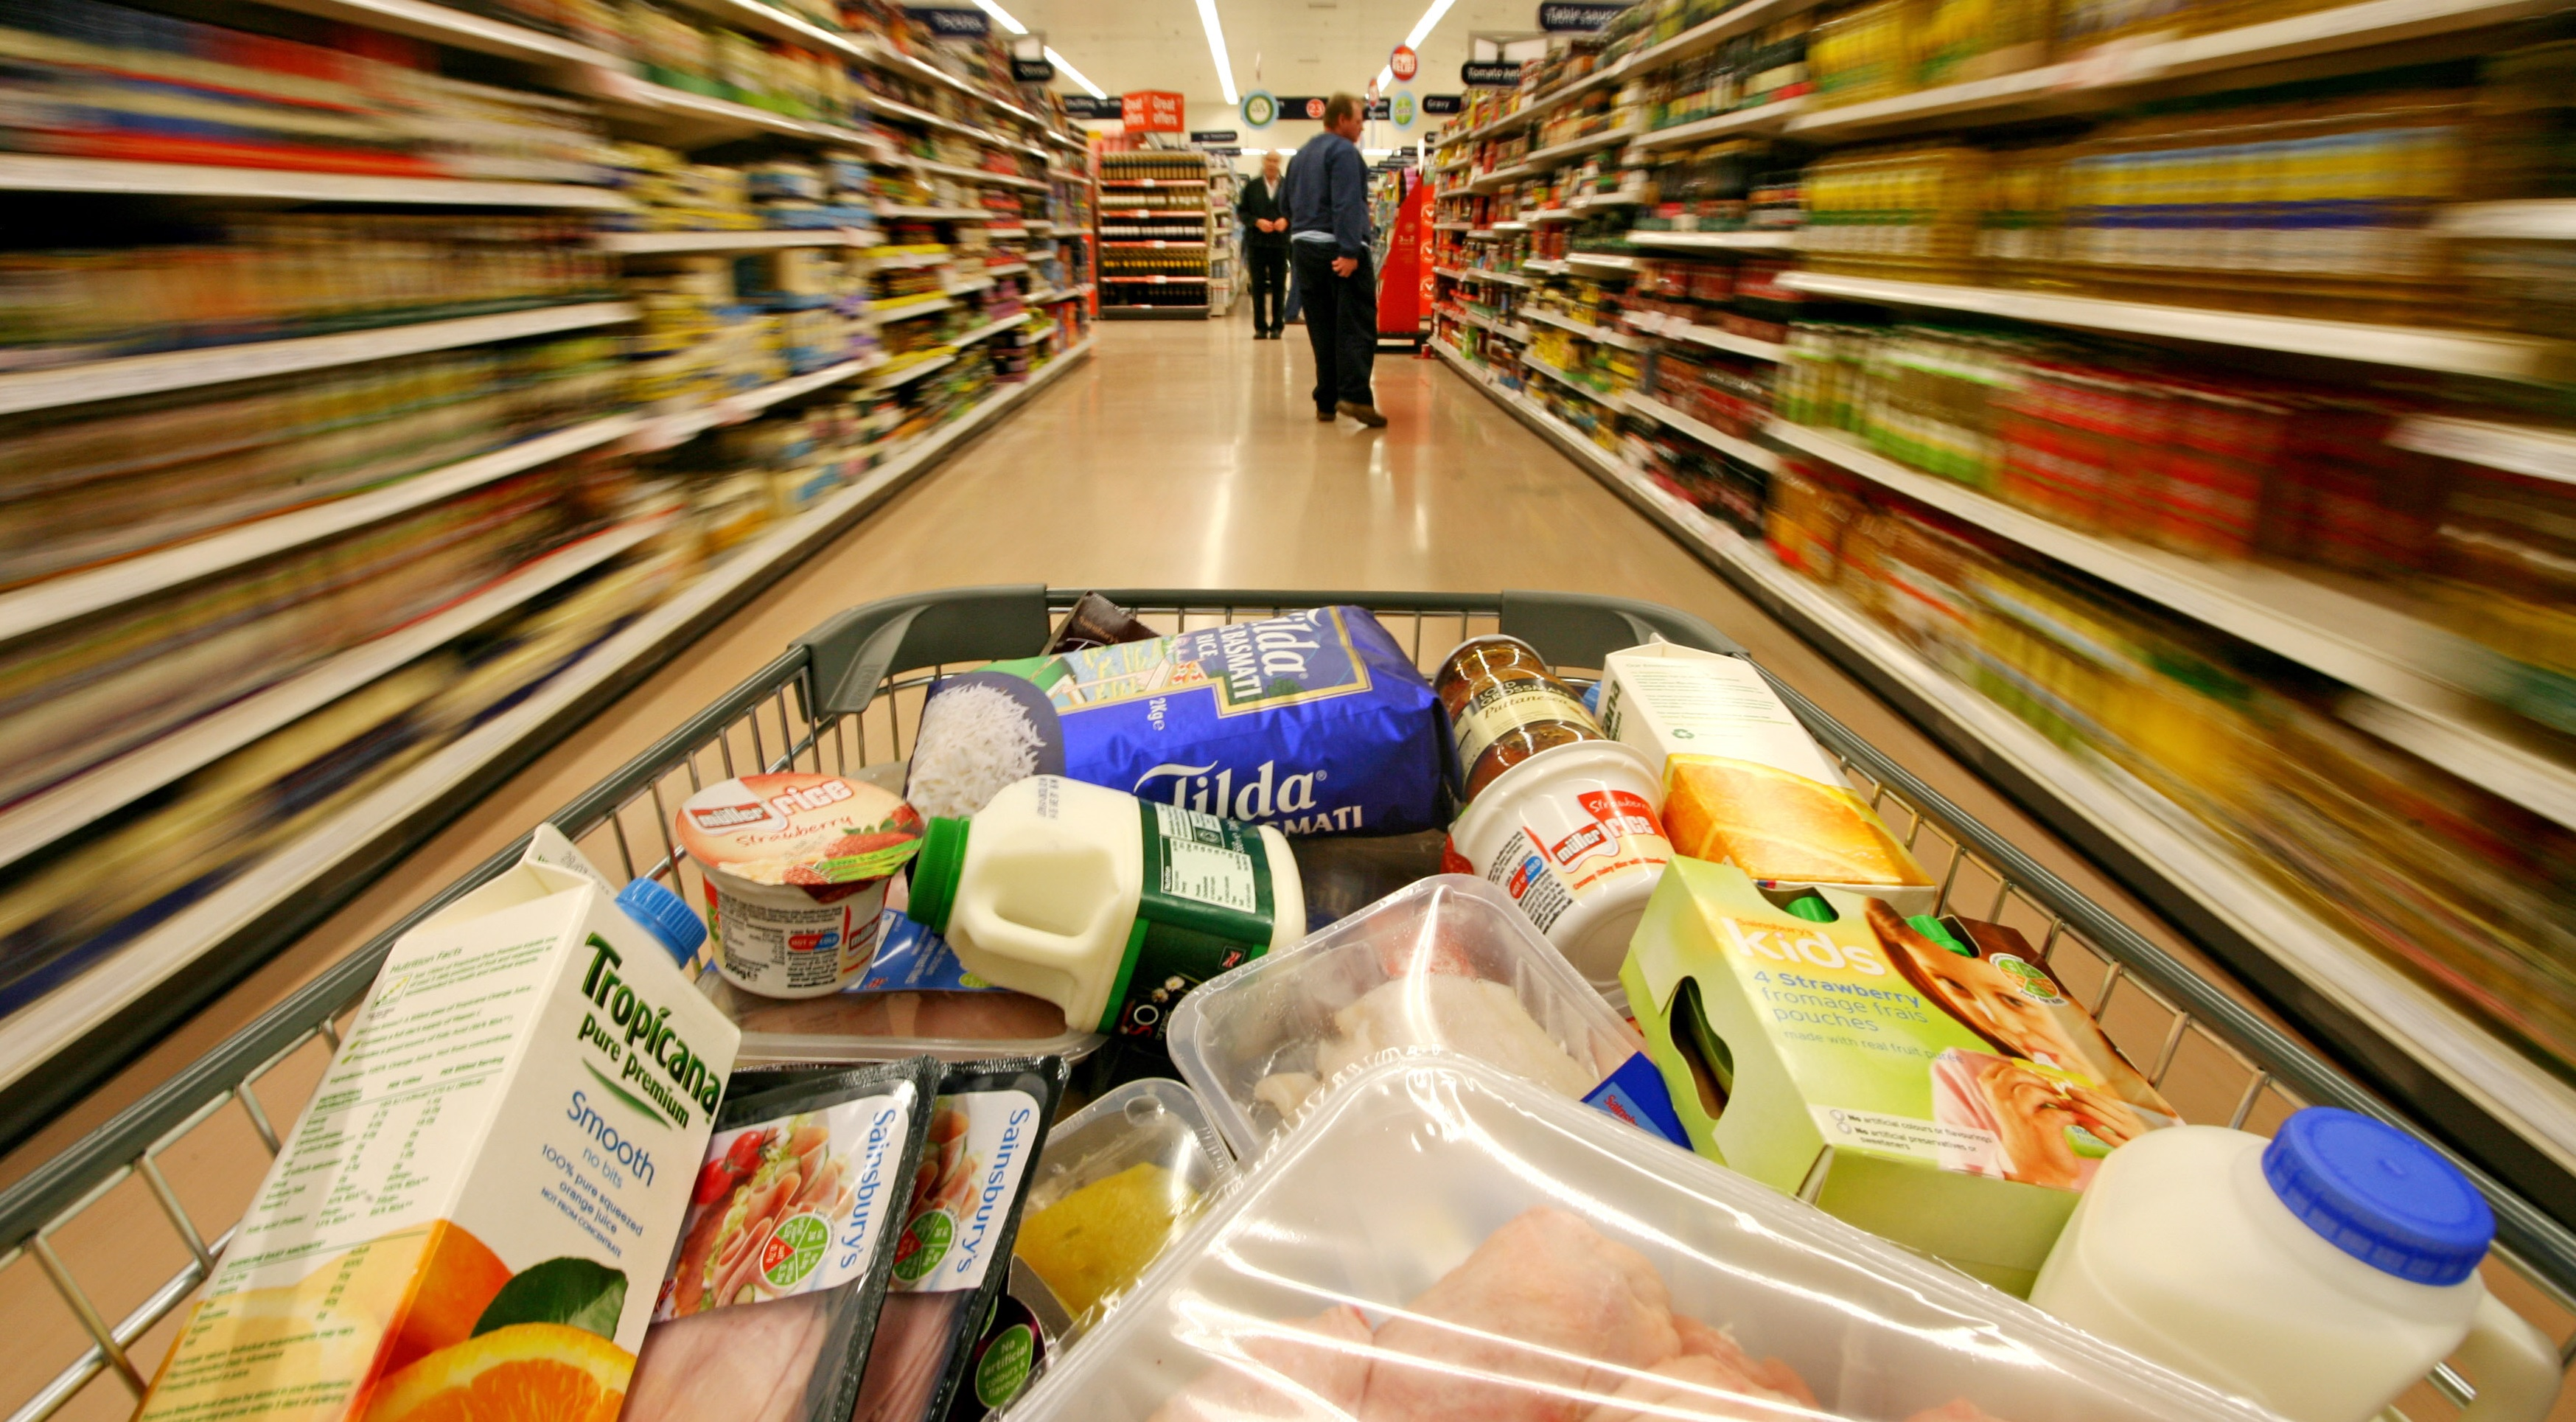 fmcg market in pakistan Fmcg buyers in pakistan pakistan fmcg buyers directory provides list of pakistan fmcg importers, buyers and purchasers who wanted to import fmcg in pakistan.